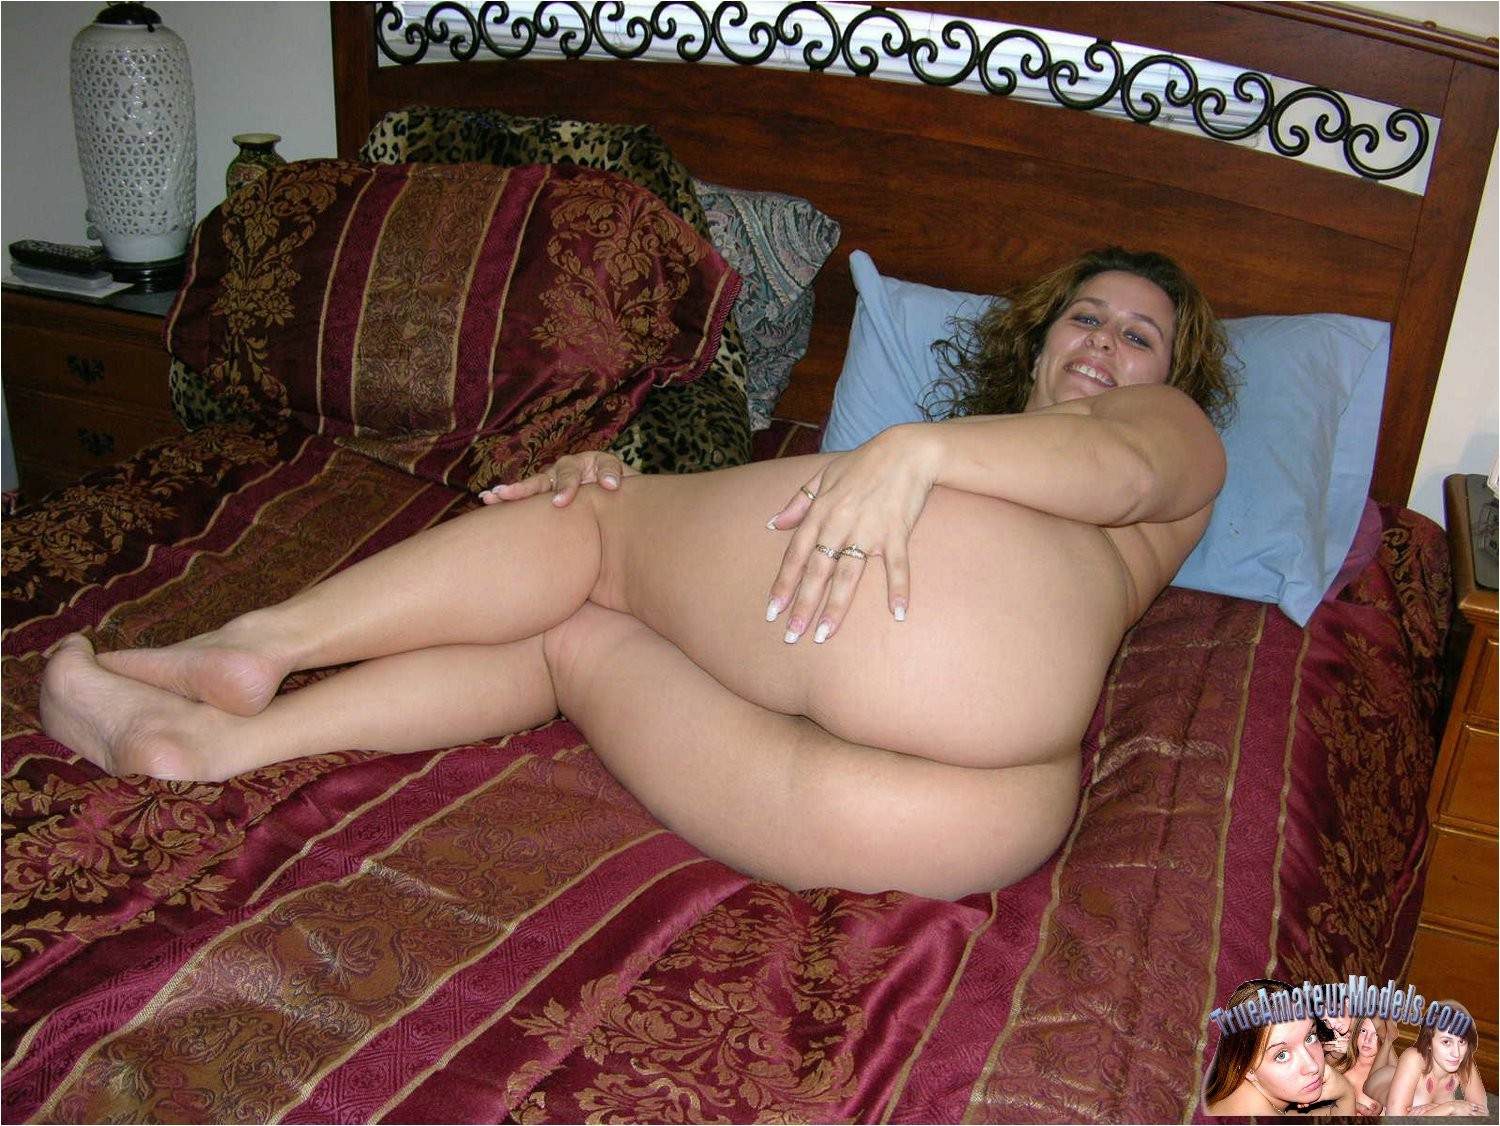 nude-amature-southern-women-ugly-nude-in-hotel